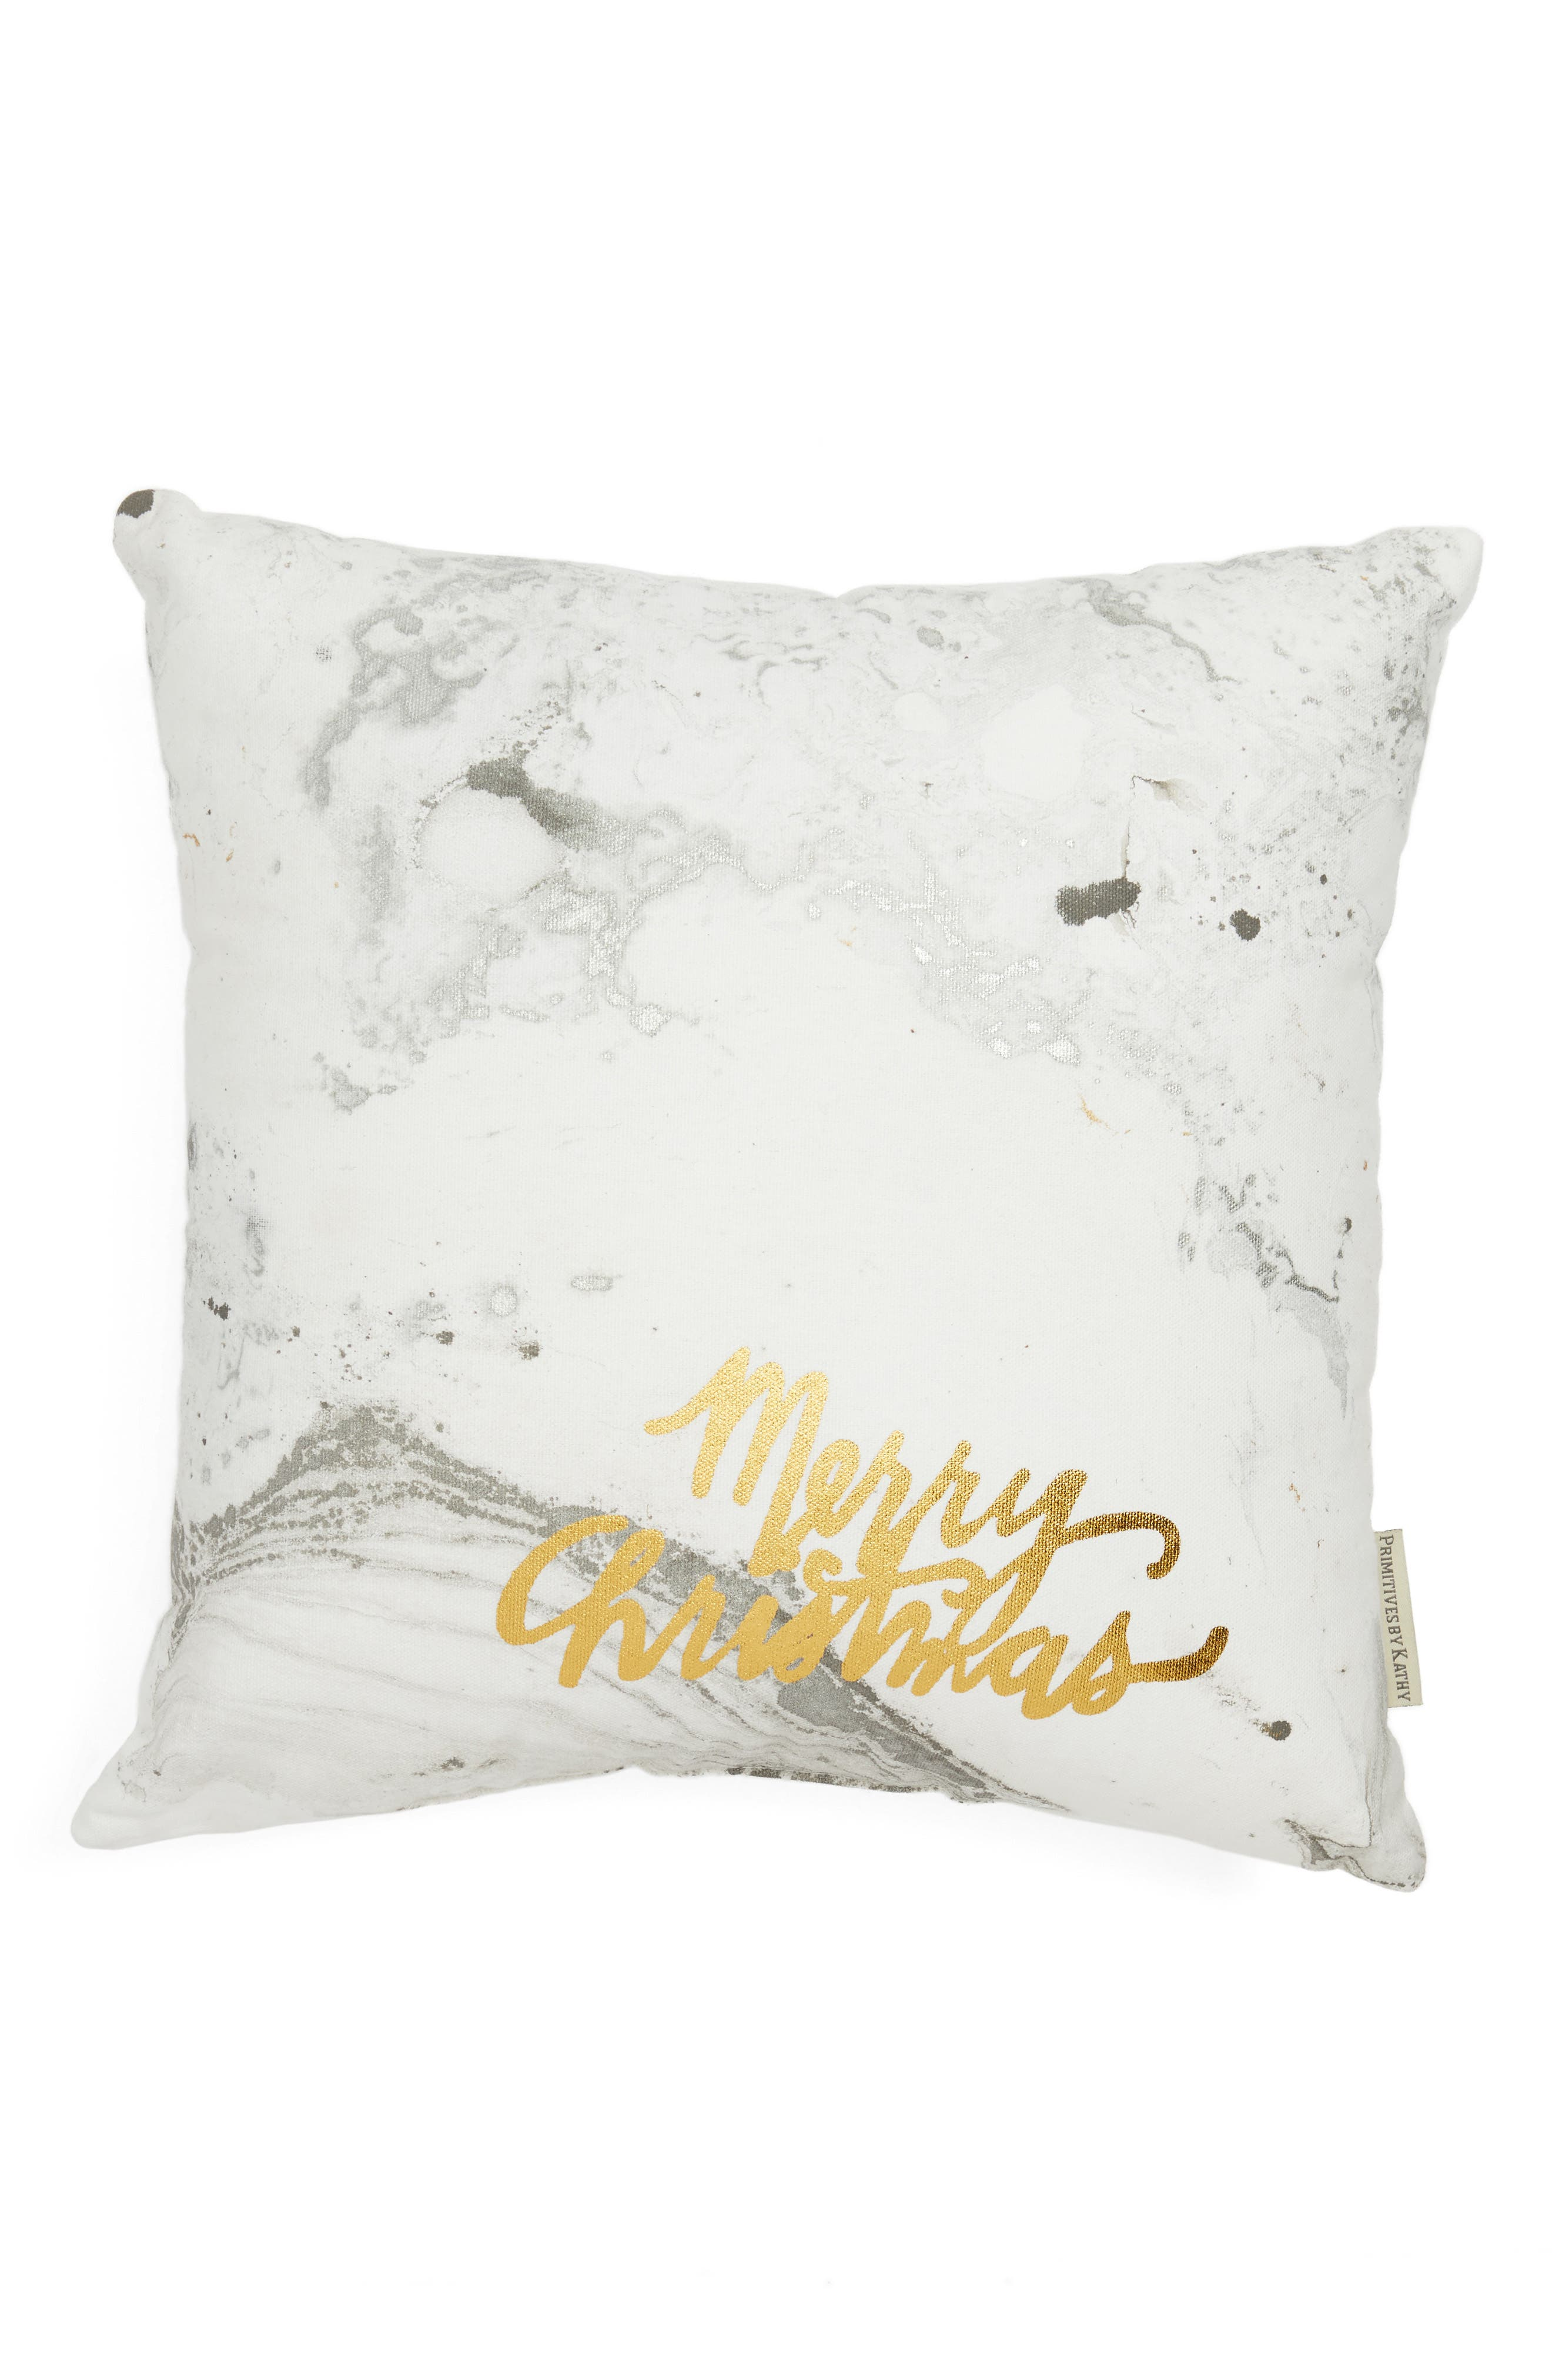 Merry Christmas Accent Pillow,                             Main thumbnail 1, color,                             020